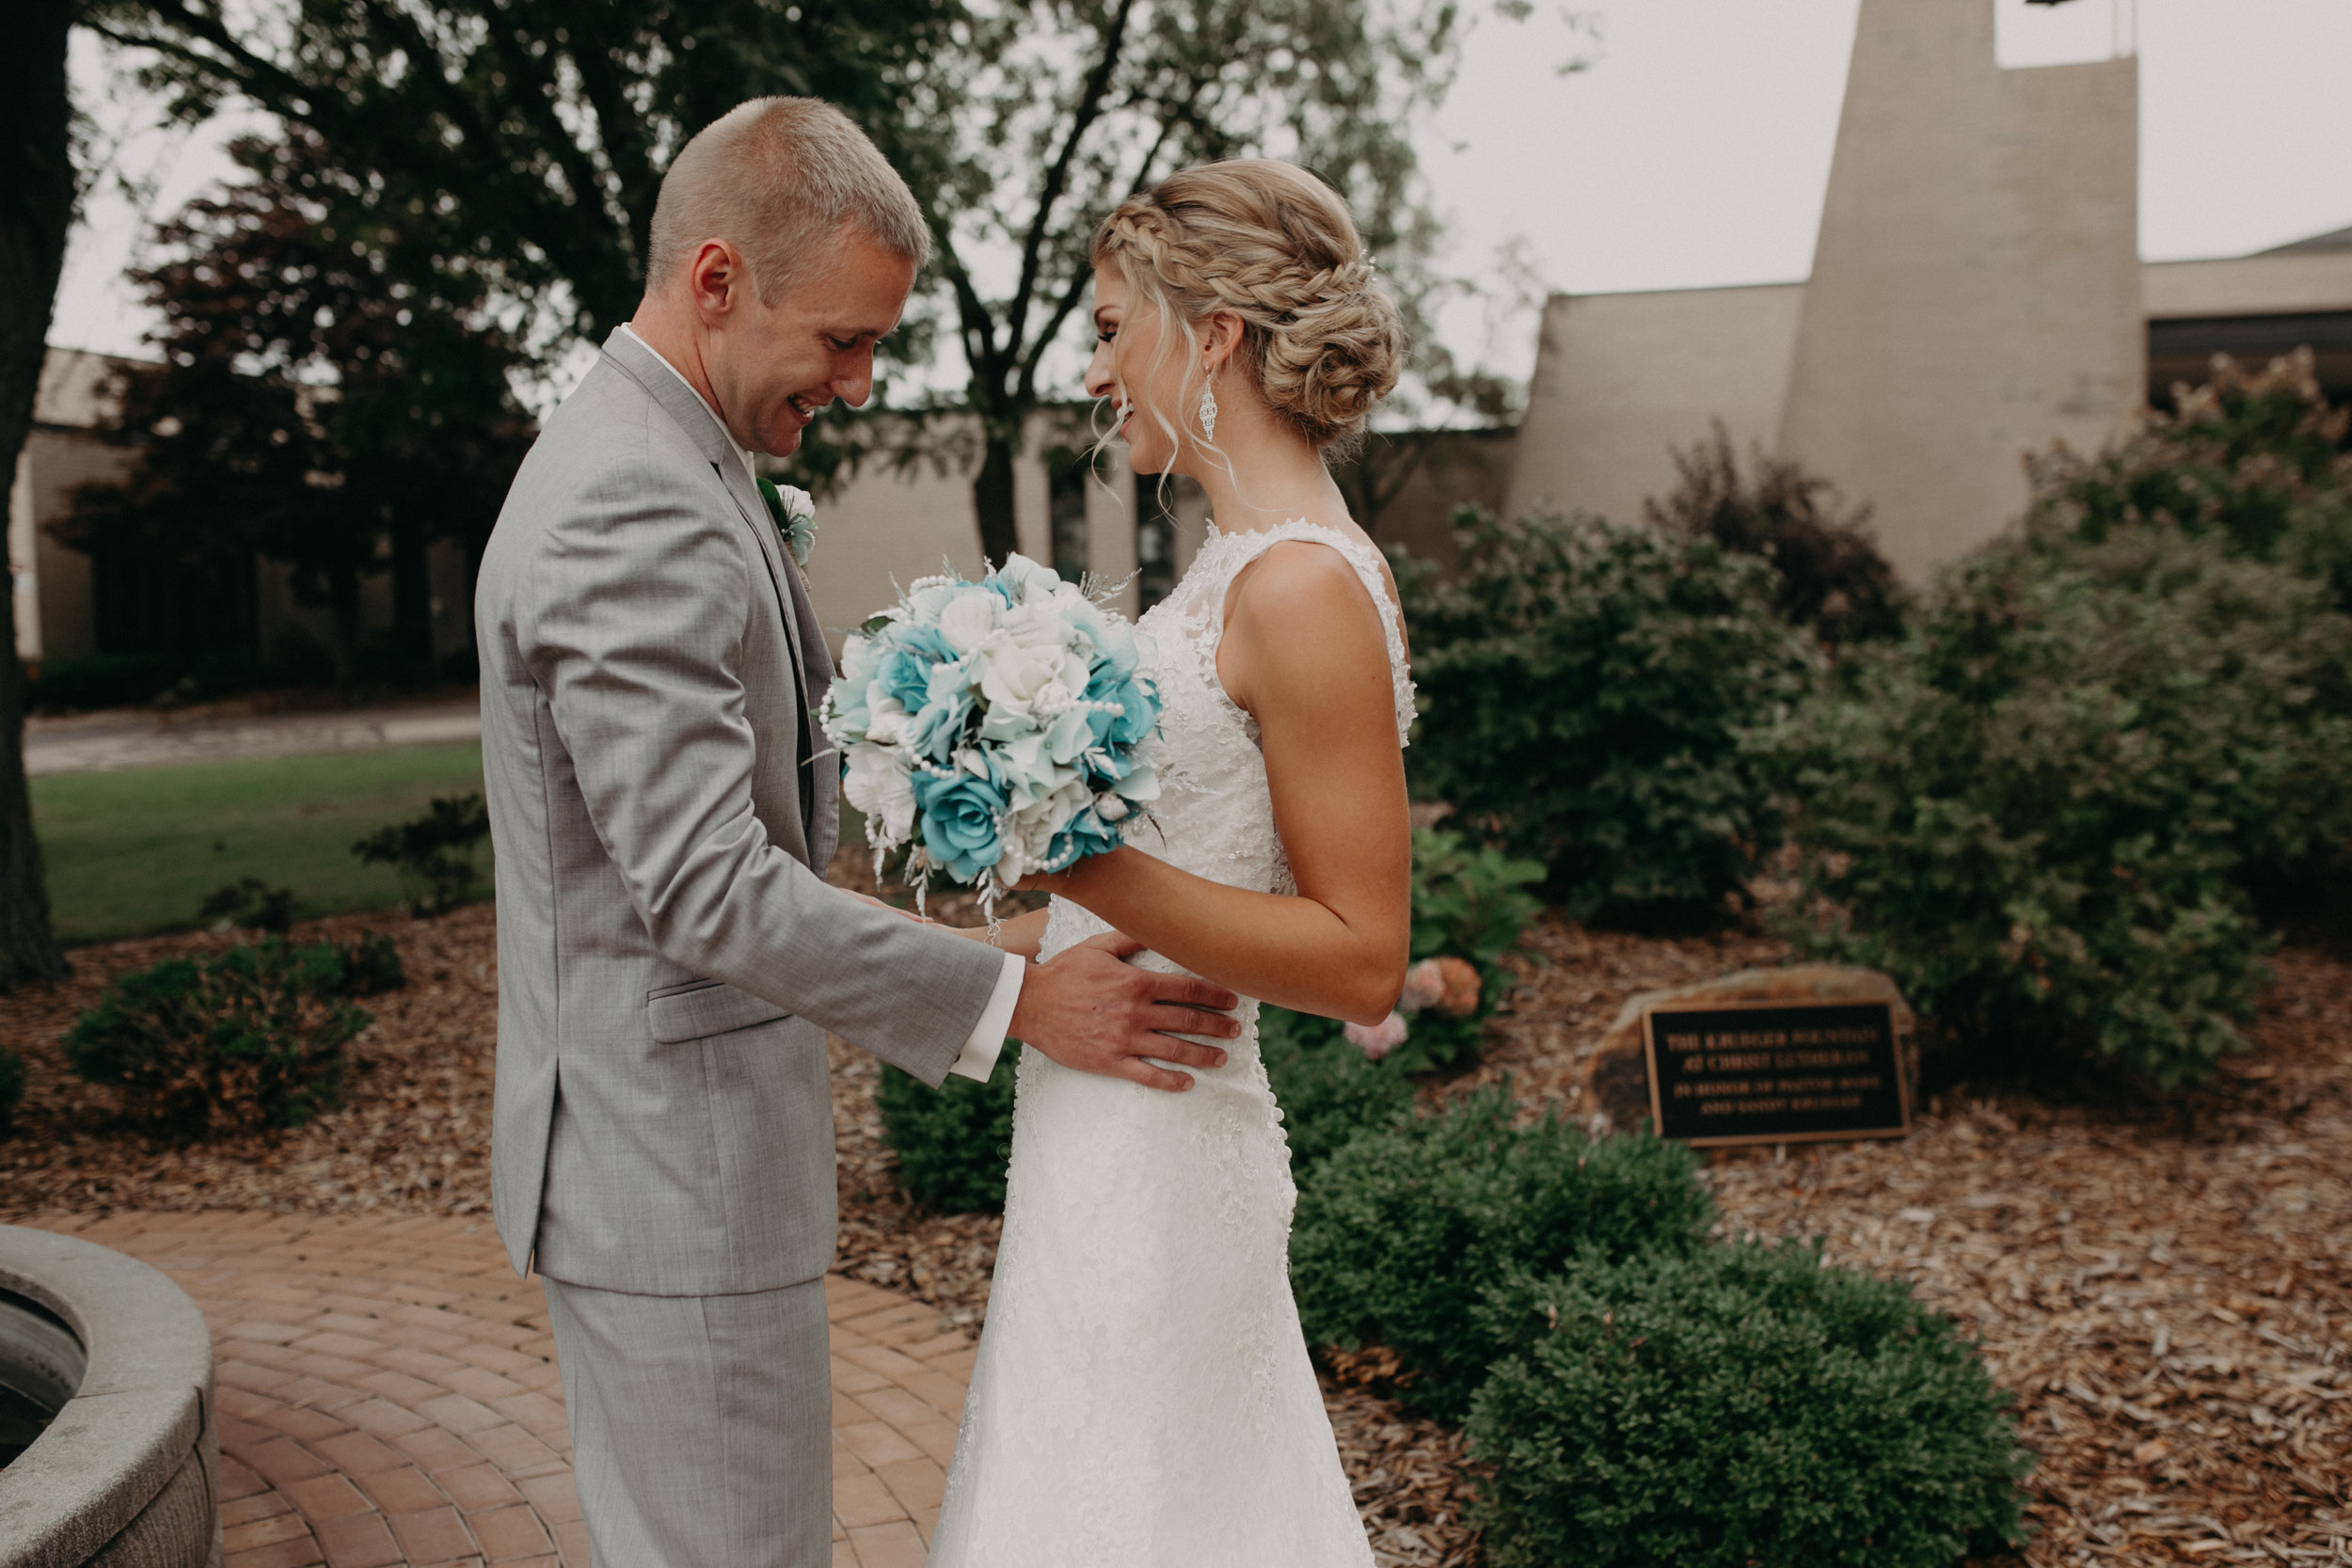 wedding photographer Andrea Wagner captures a joyful first look before Marshfield WI wedding